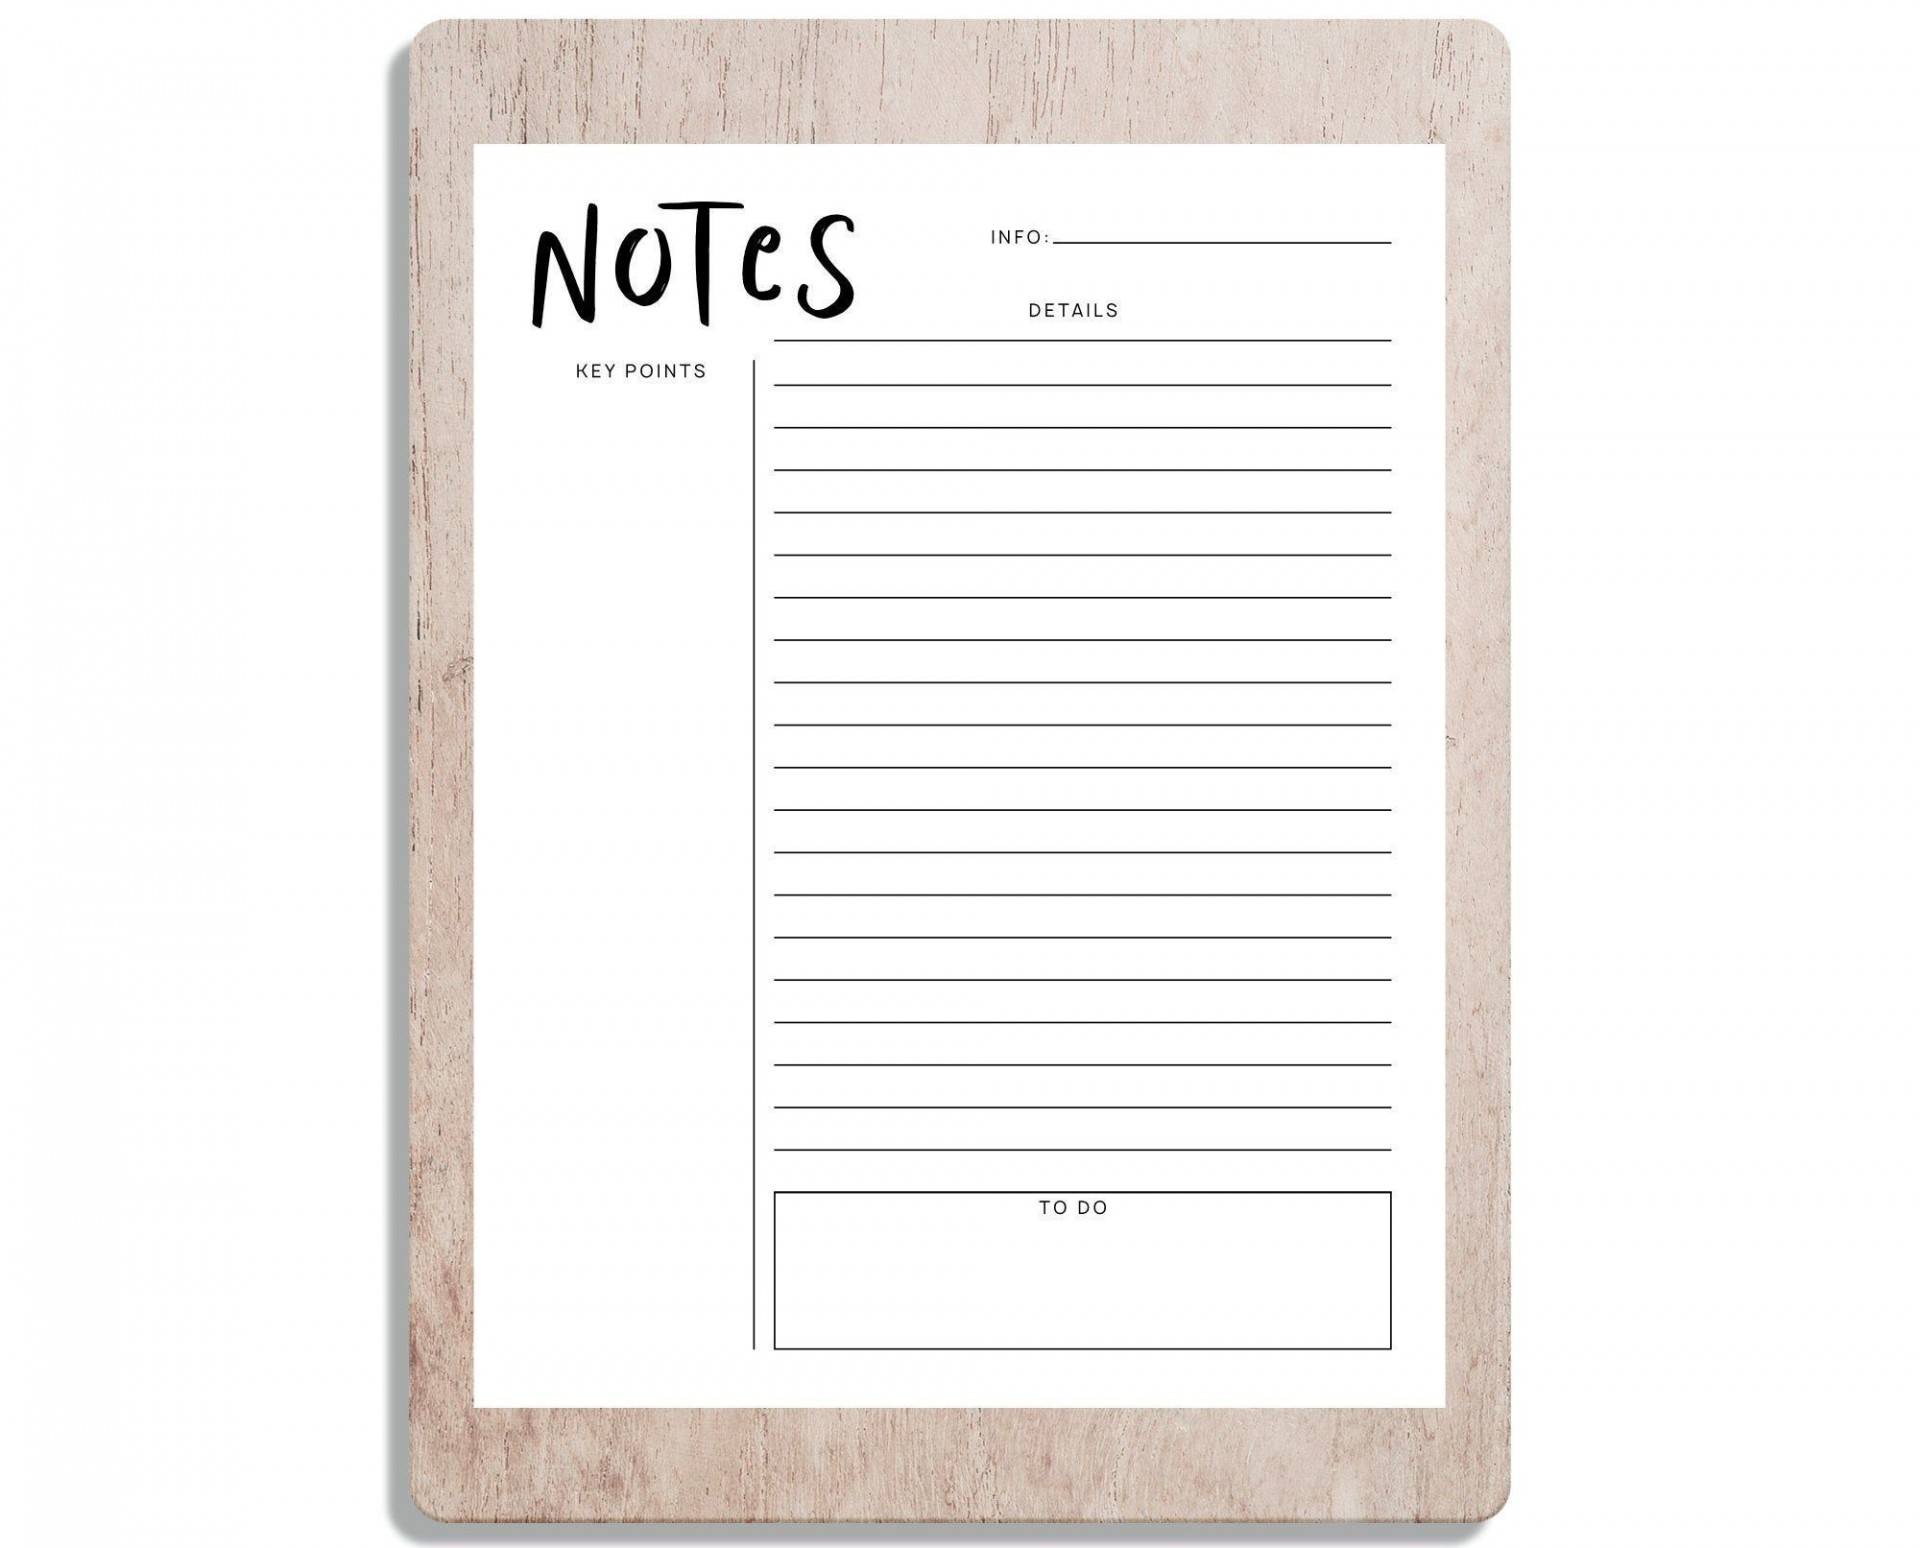 001 Formidable Note Taking Template Pdf High Resolution  Free Cornell Example1920